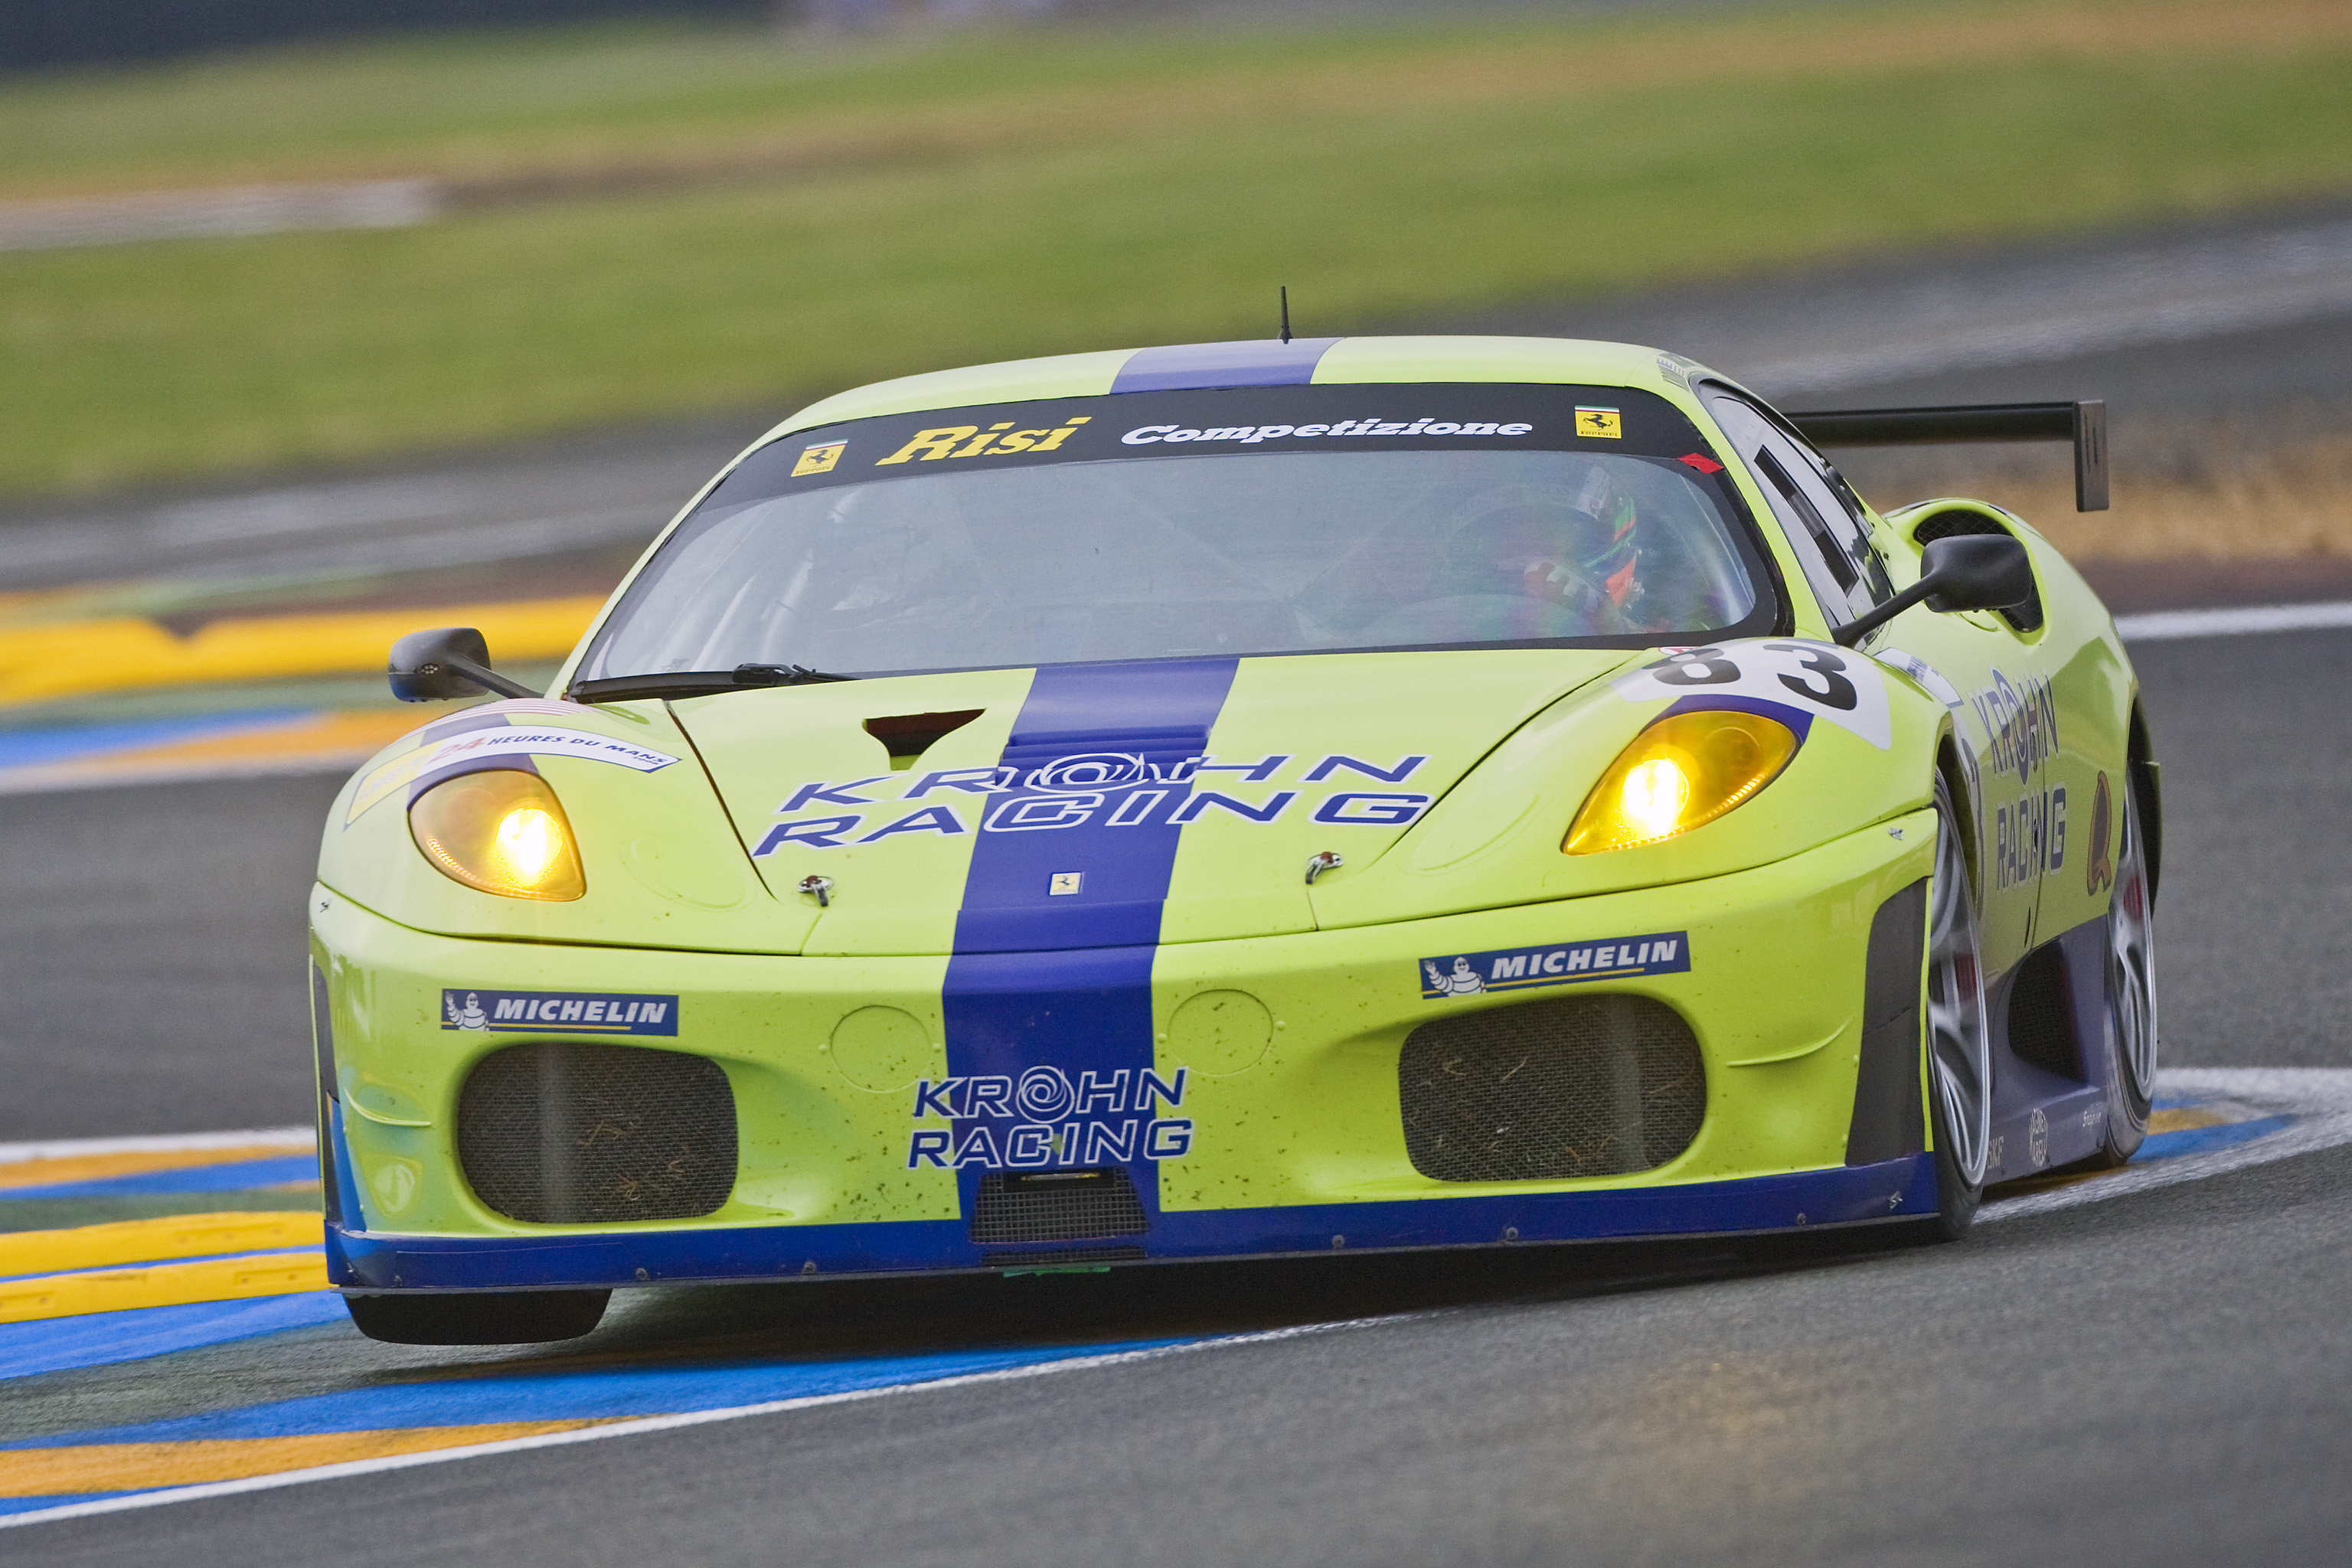 2008 - Le Mans test day